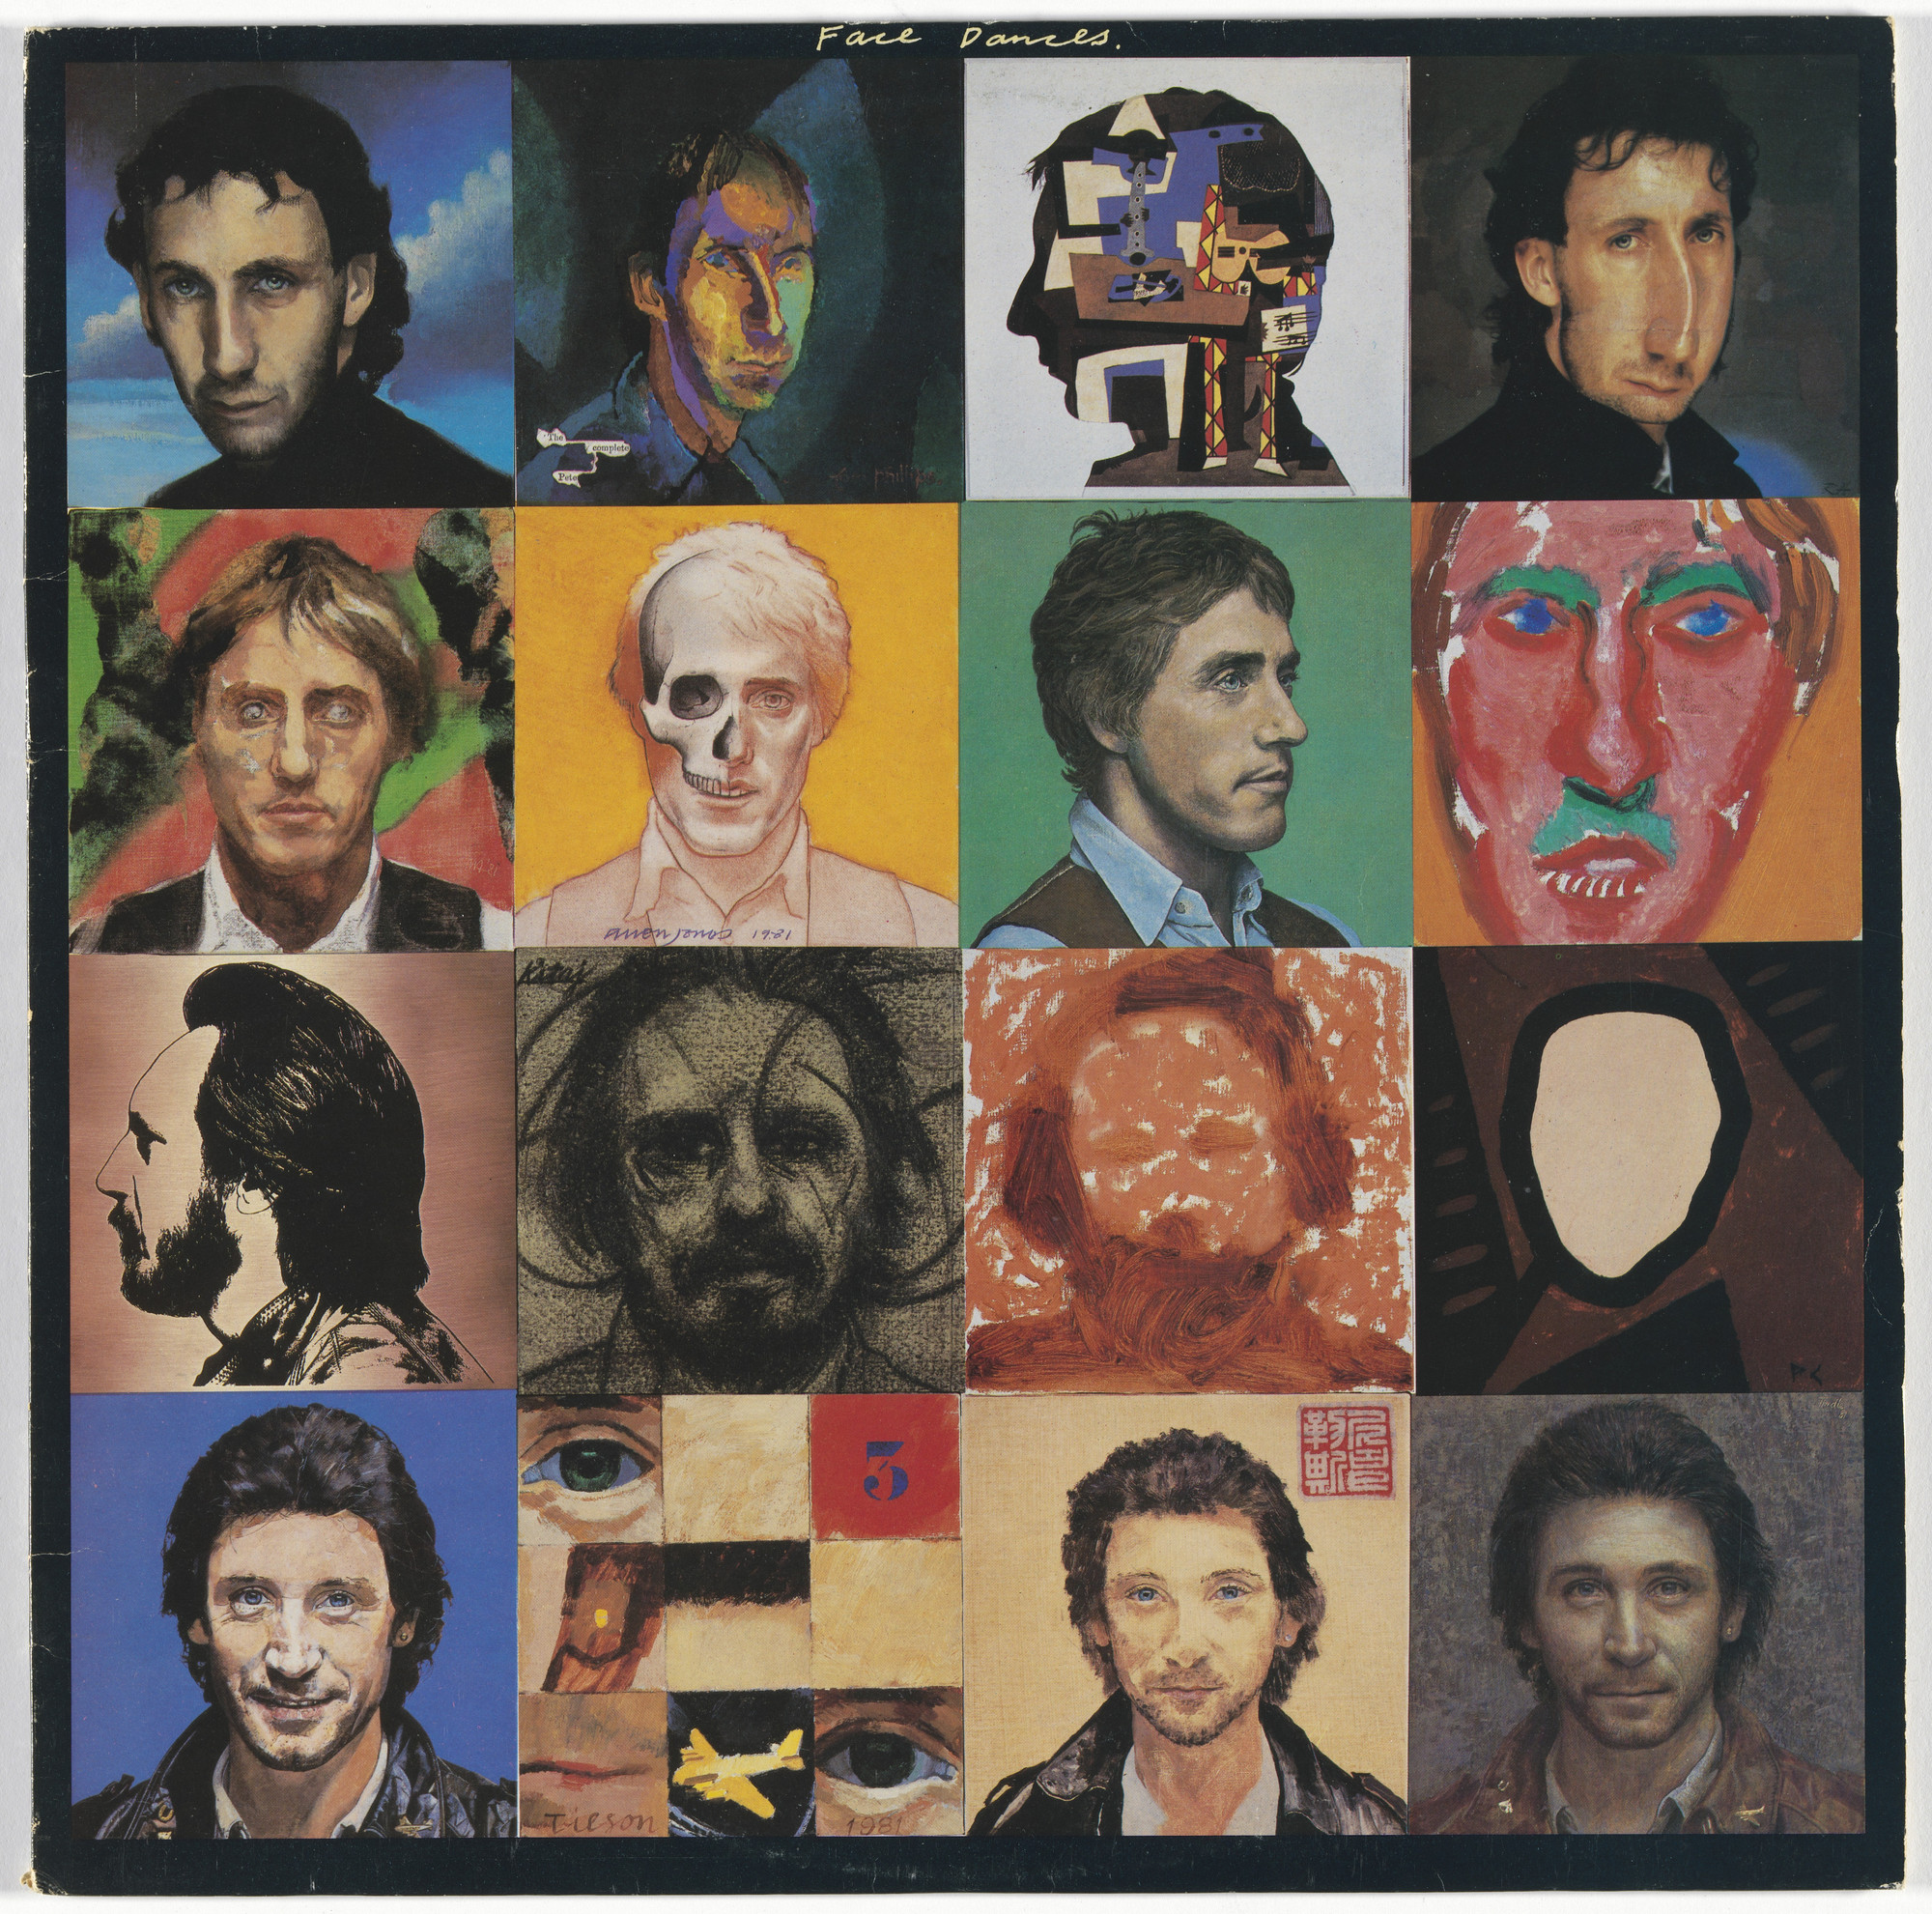 Peter Blake, Richard Evans, Clive Barker, Brian Aris, Gavin Cochrane, Warner Bros. Records, Bill Jacklin, Tom Phillips, Colin Self, Richard Hamilton, Michael Andrews, Allen Jones, David Inshaw, David Hockney, R. B. Kitaj, Howard Hodgkin, Patrick Caulfield, Joe Tilson, Patrick Procktor, David Tindle. Album cover for The Who, Face Dances. 1981